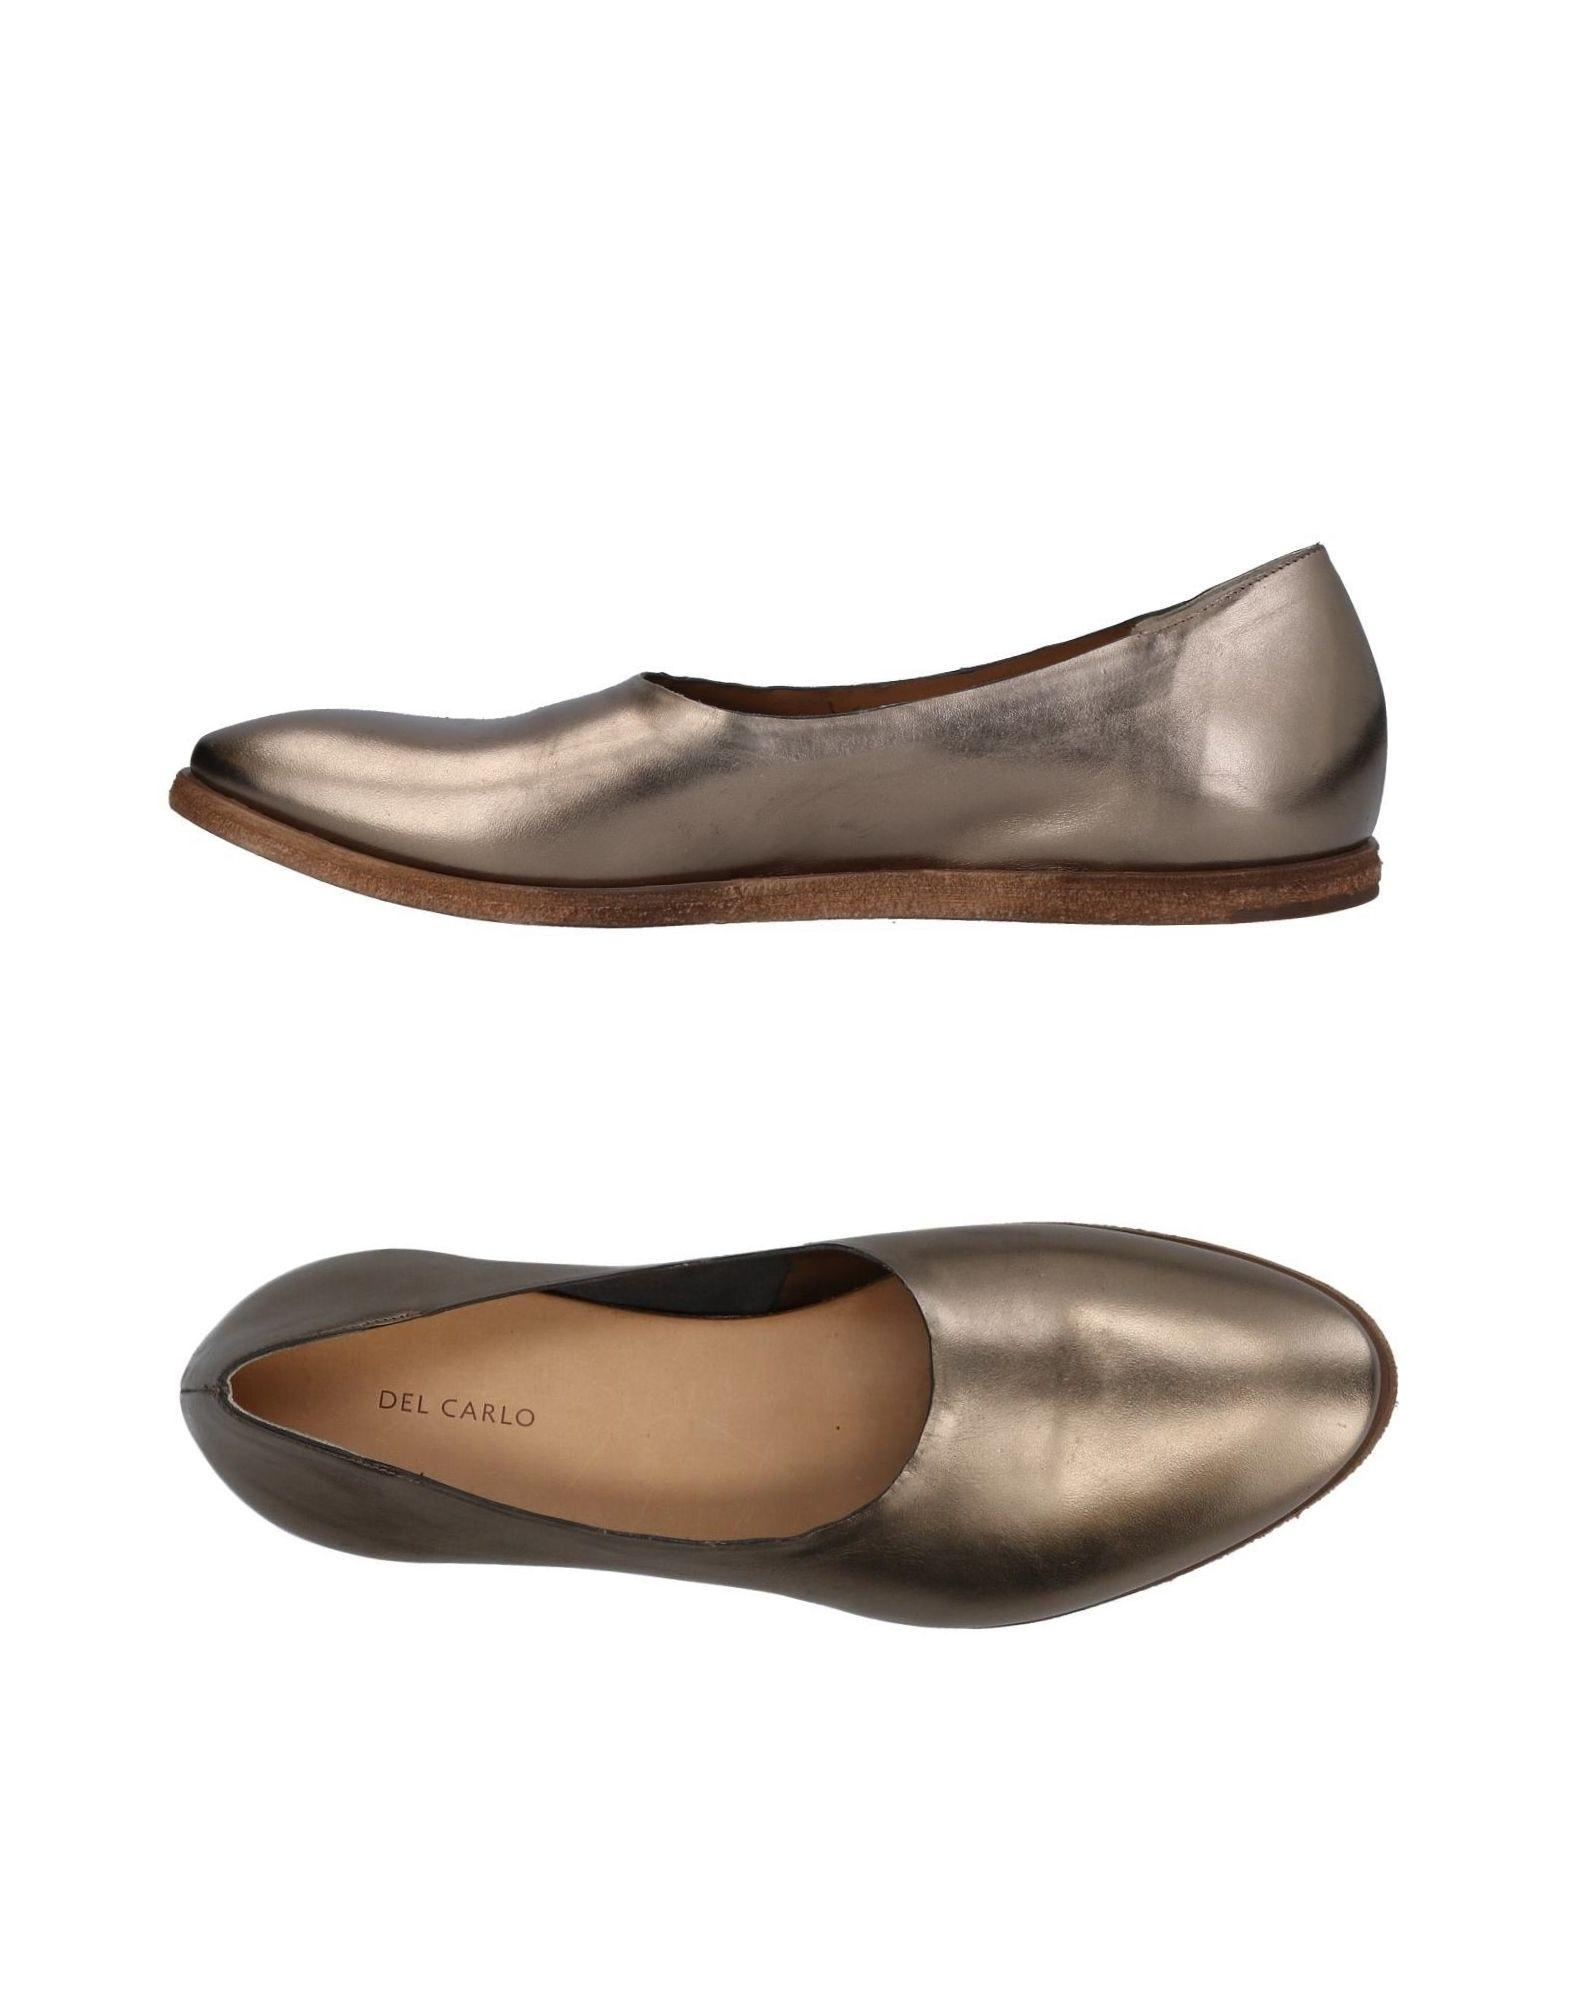 FOOTWEAR - Ballet flats Roberto Del Carlo Perfect Cheap Price Low Shipping Fee Sale Online Cheap Sale Footlocker Pictures Clearance New Arrival 0zPsjisaEW